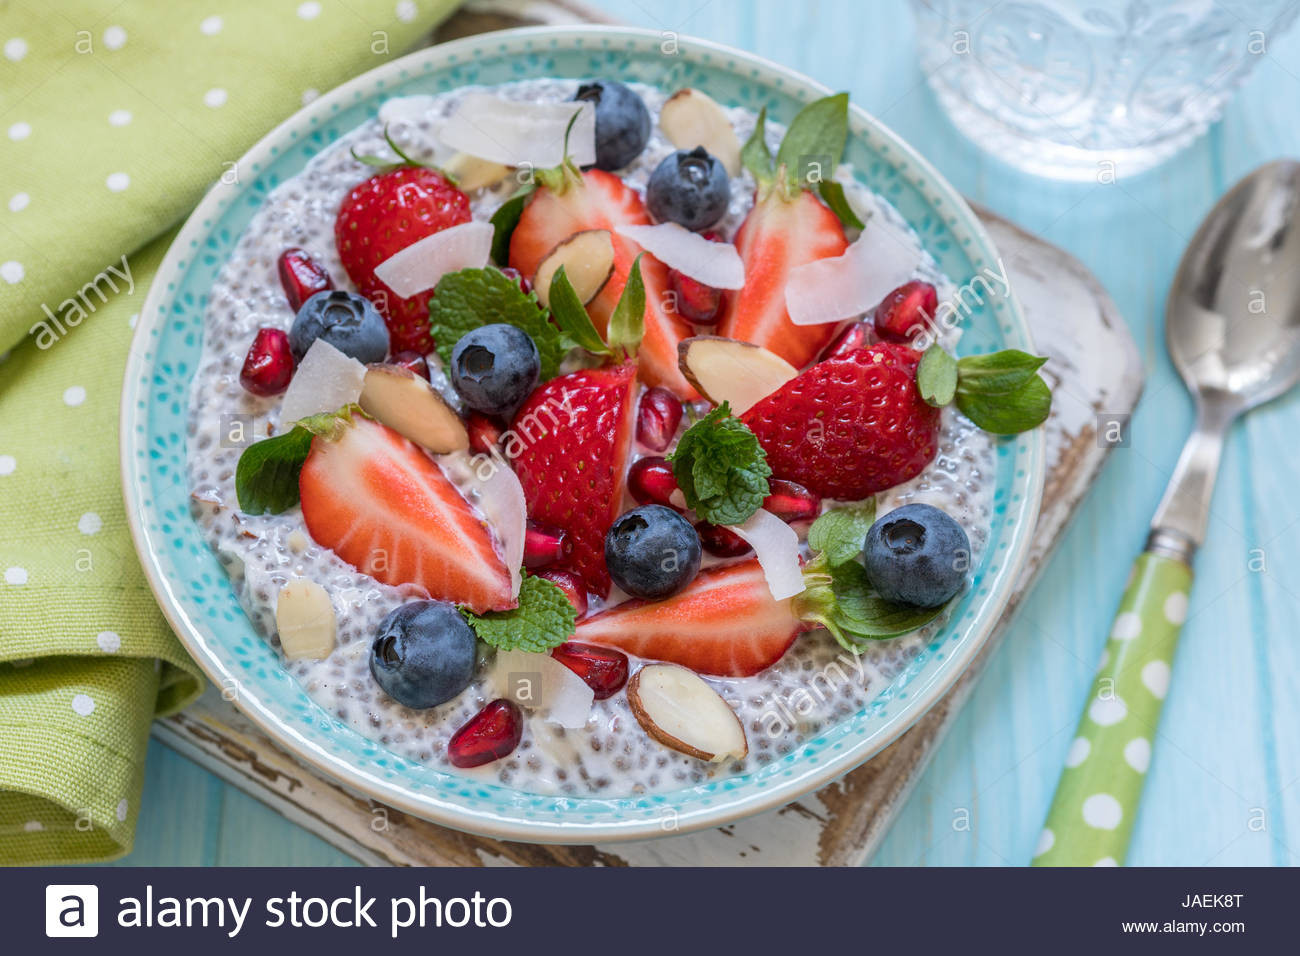 Low Carb Diet Not Keto  Keto ketogenic paleo low carb t not oatmeal breakfast